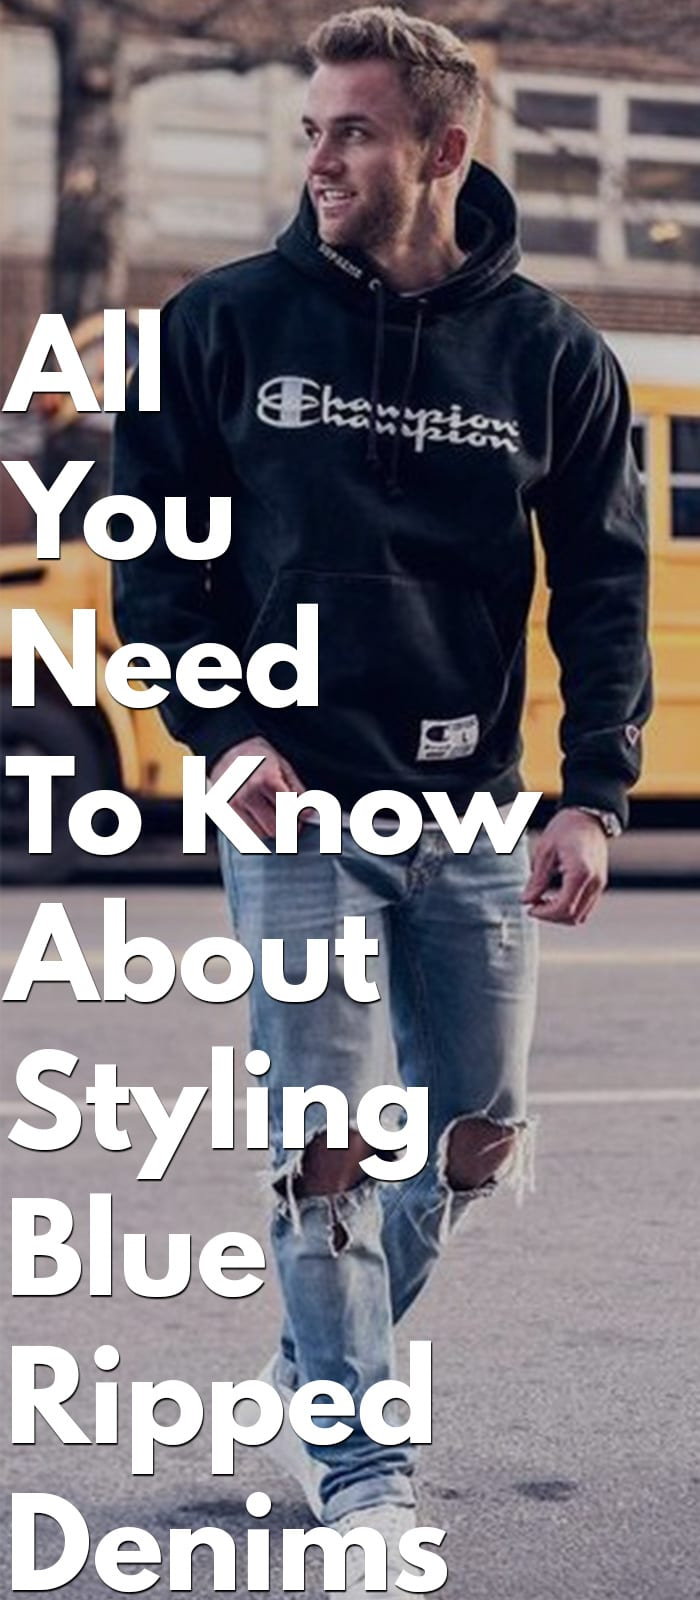 All You Need To Know About Styling Blue Ripped Denims